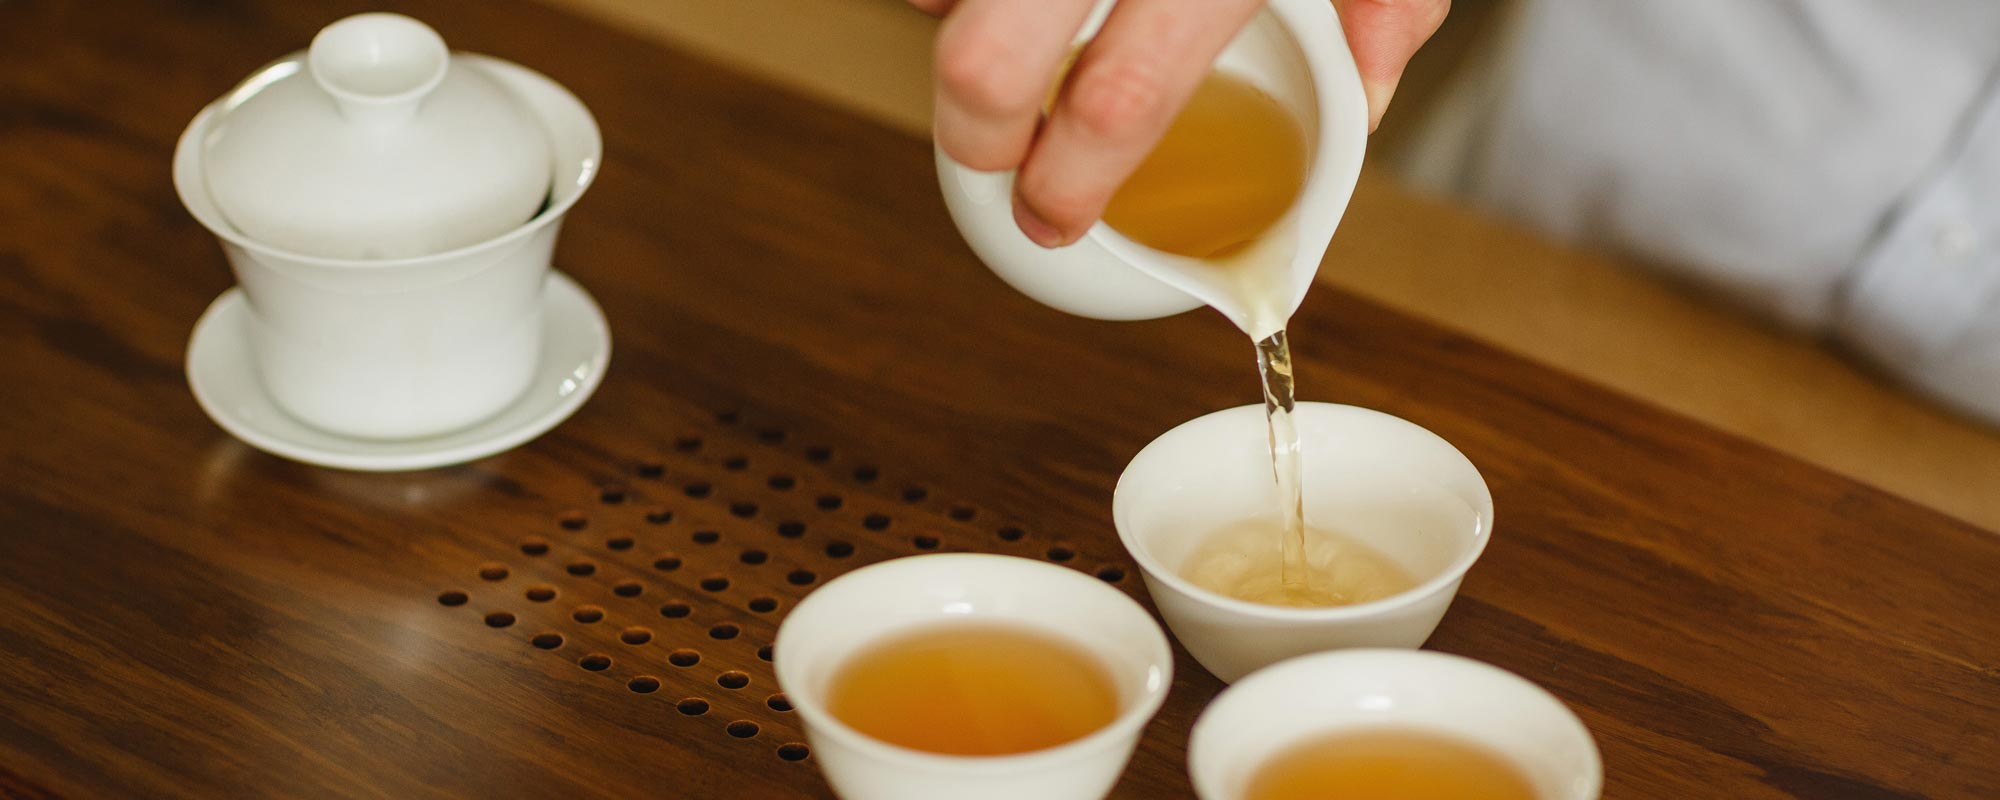 Pouring freshly made Wuyi Oolong into procelain tea tasting cups